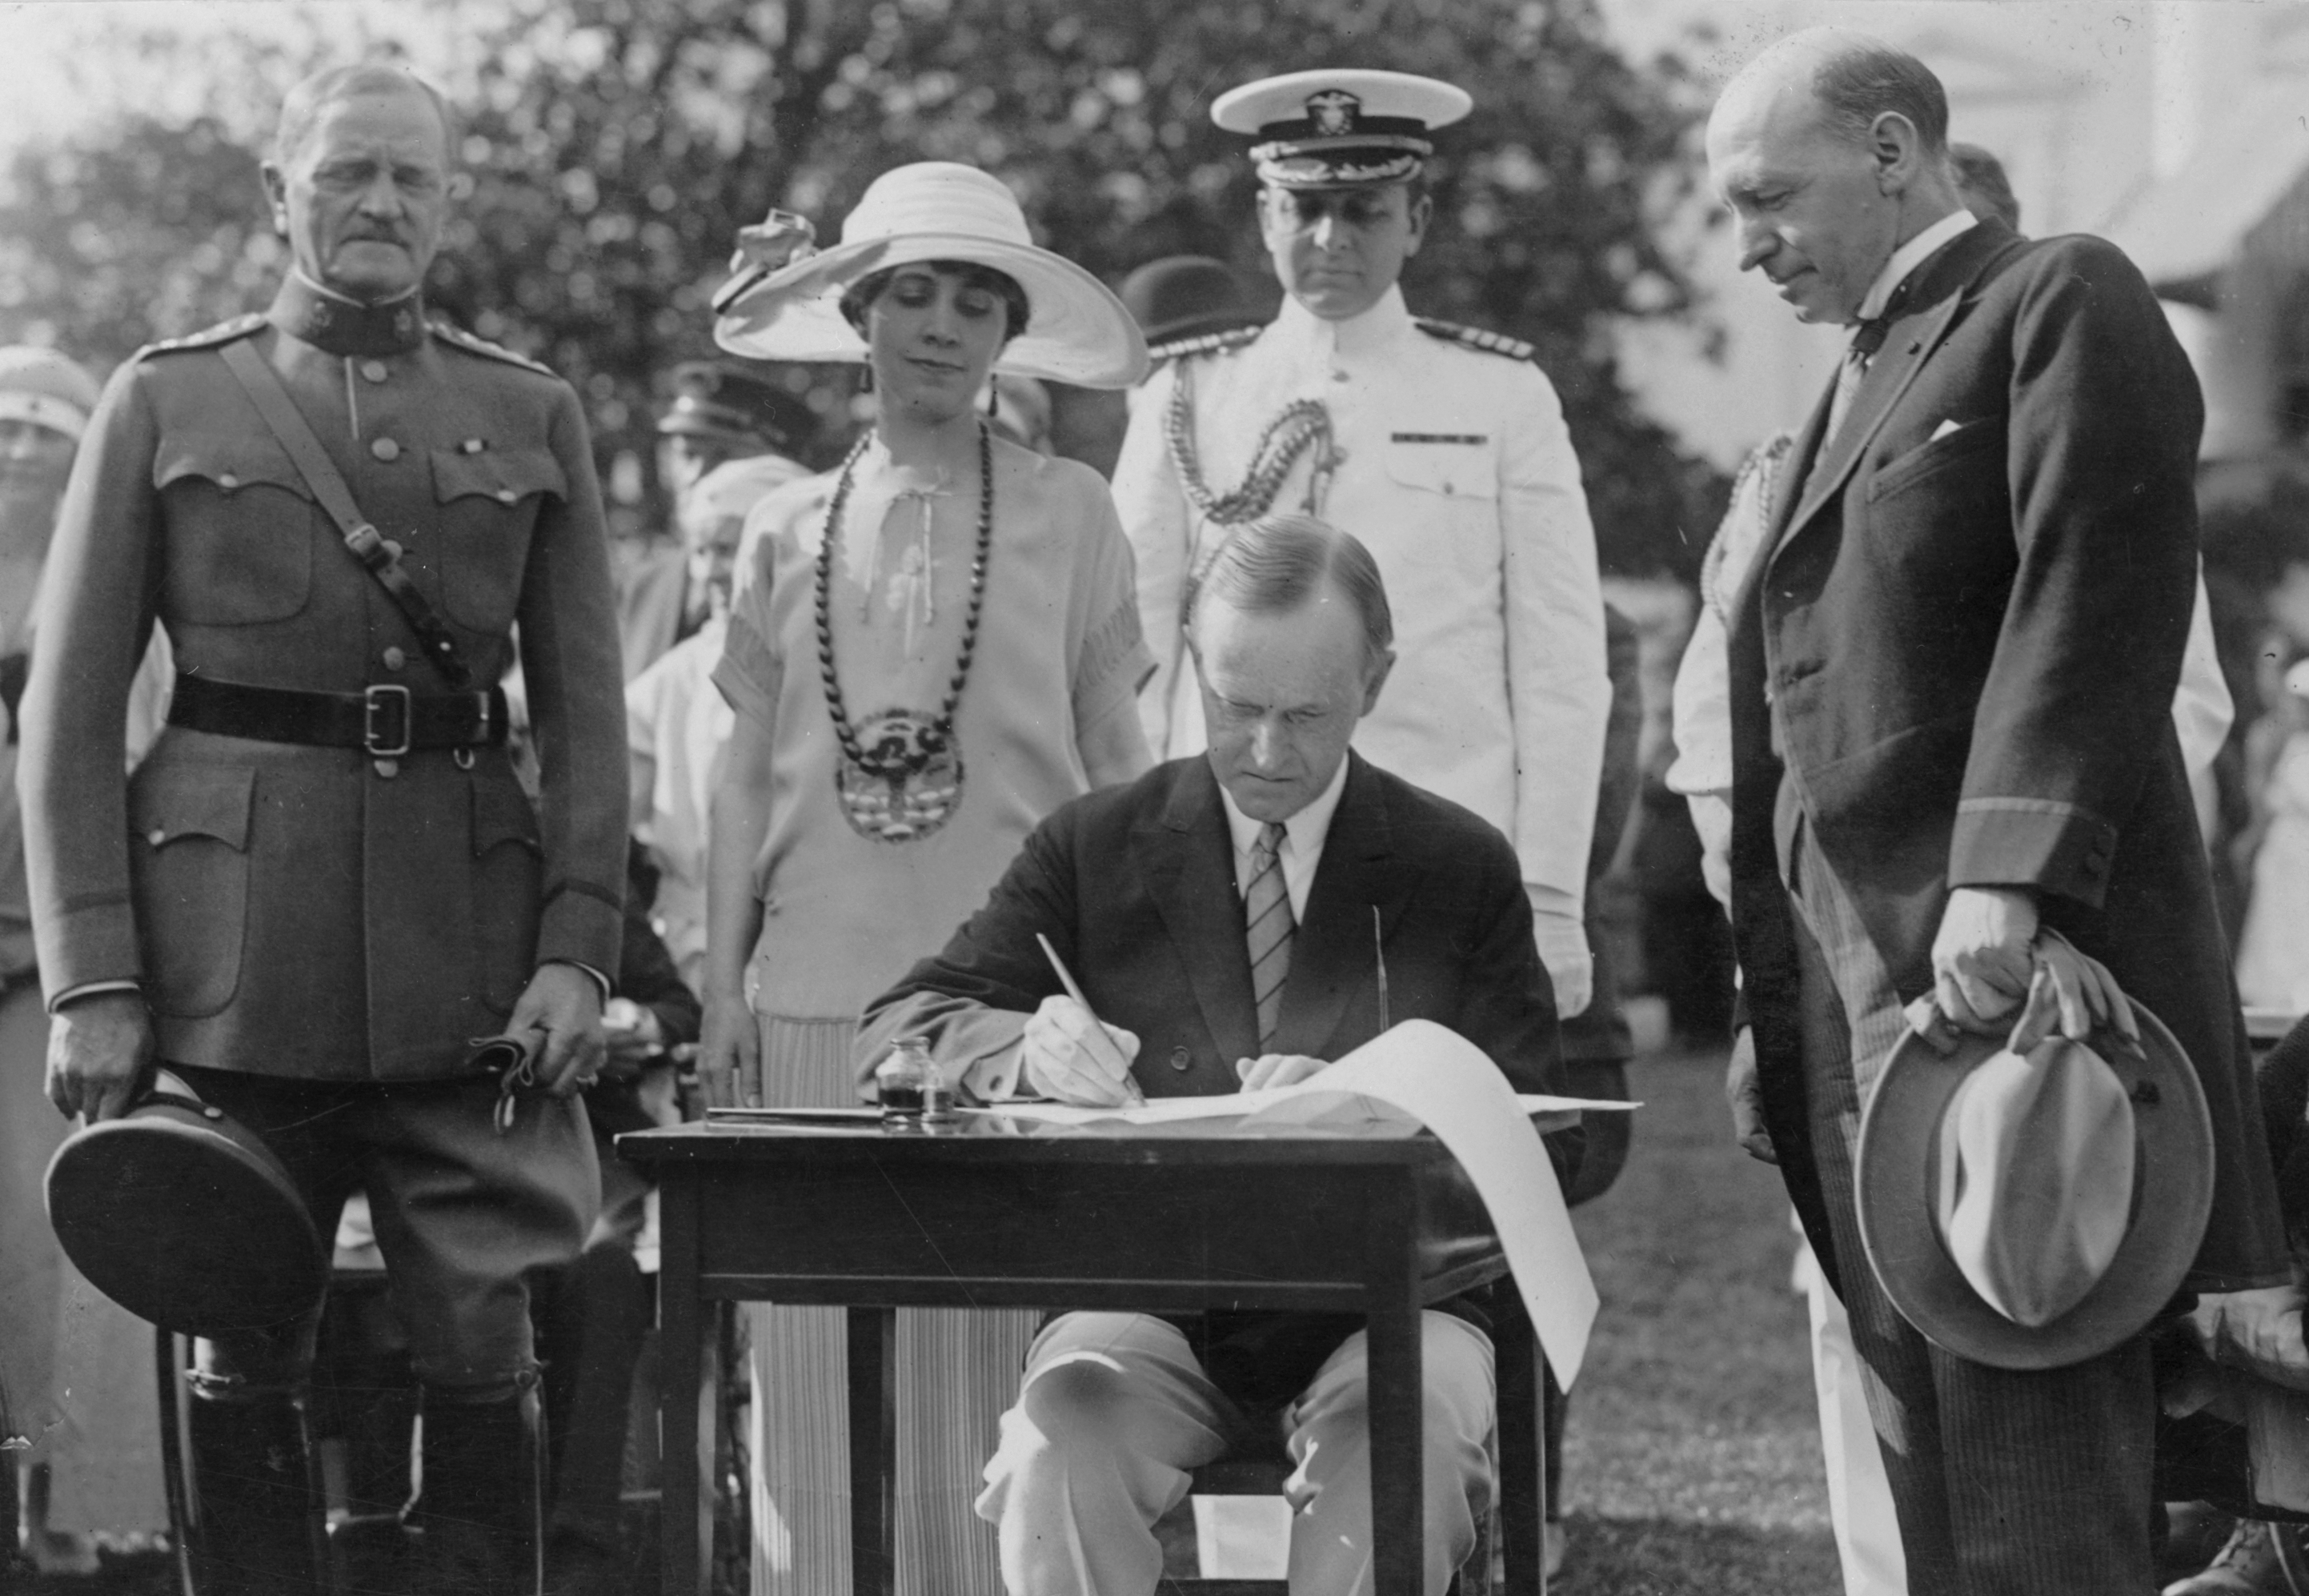 President Coolidge signing appropriation bills for the Veterans Bureau on the South Lawn during the garden party for wounded veterans, June 5, 1924. General John J. Pershing is at left. The man at right, looking on, appears to be Veterans Bureau Director Frank T. Hines. CalvinCoolidgeimmigration3.jpg